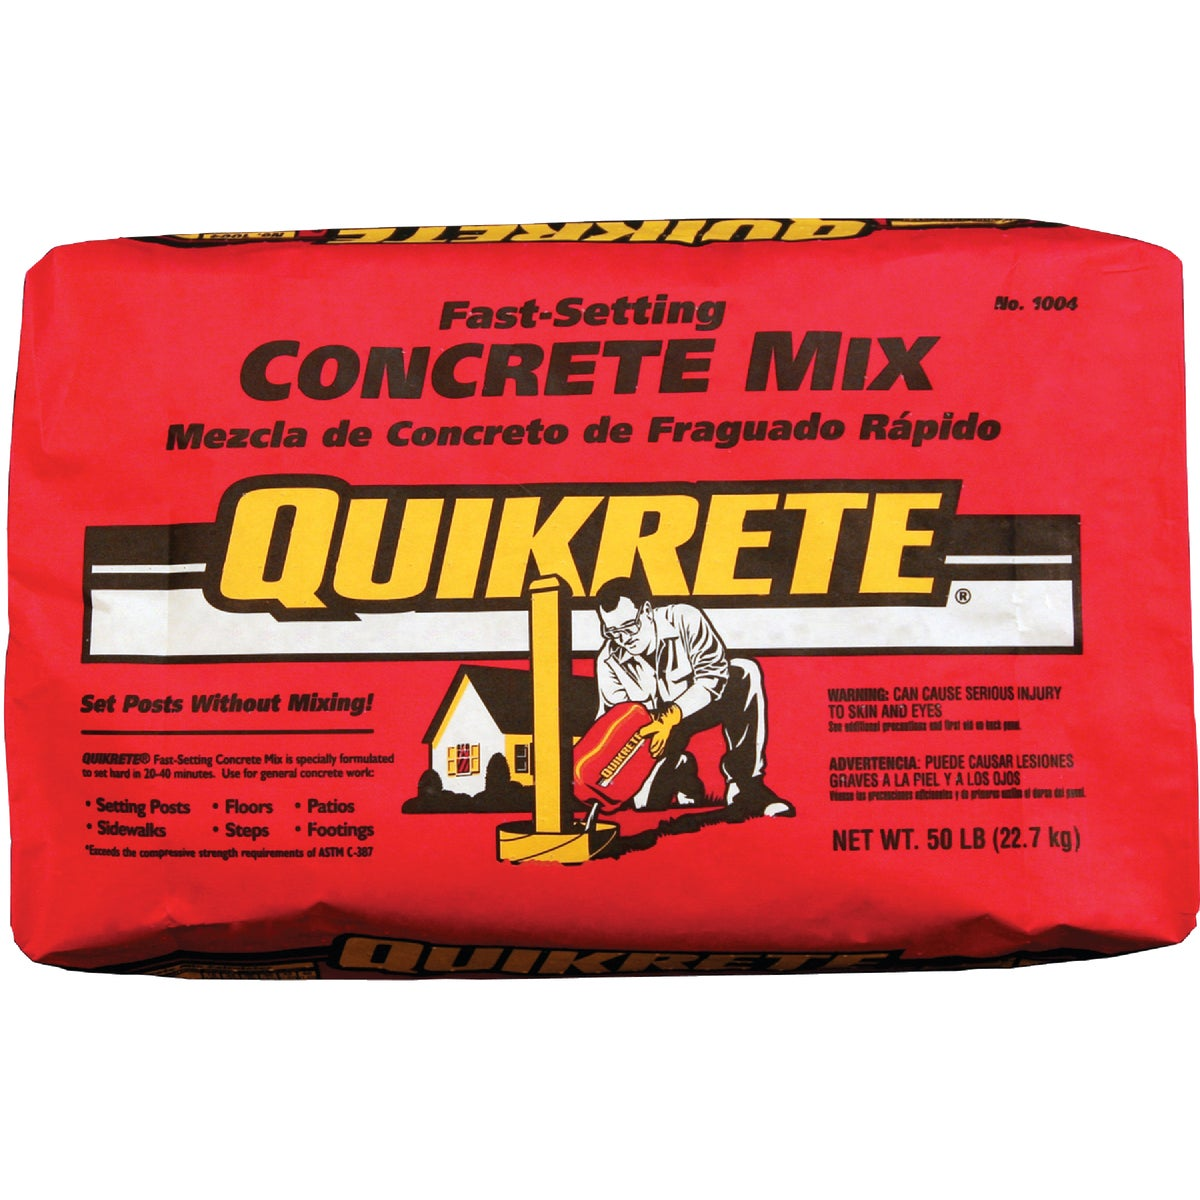 50LB FAST CONCRETE MIX - 100450 by Quikrete Co